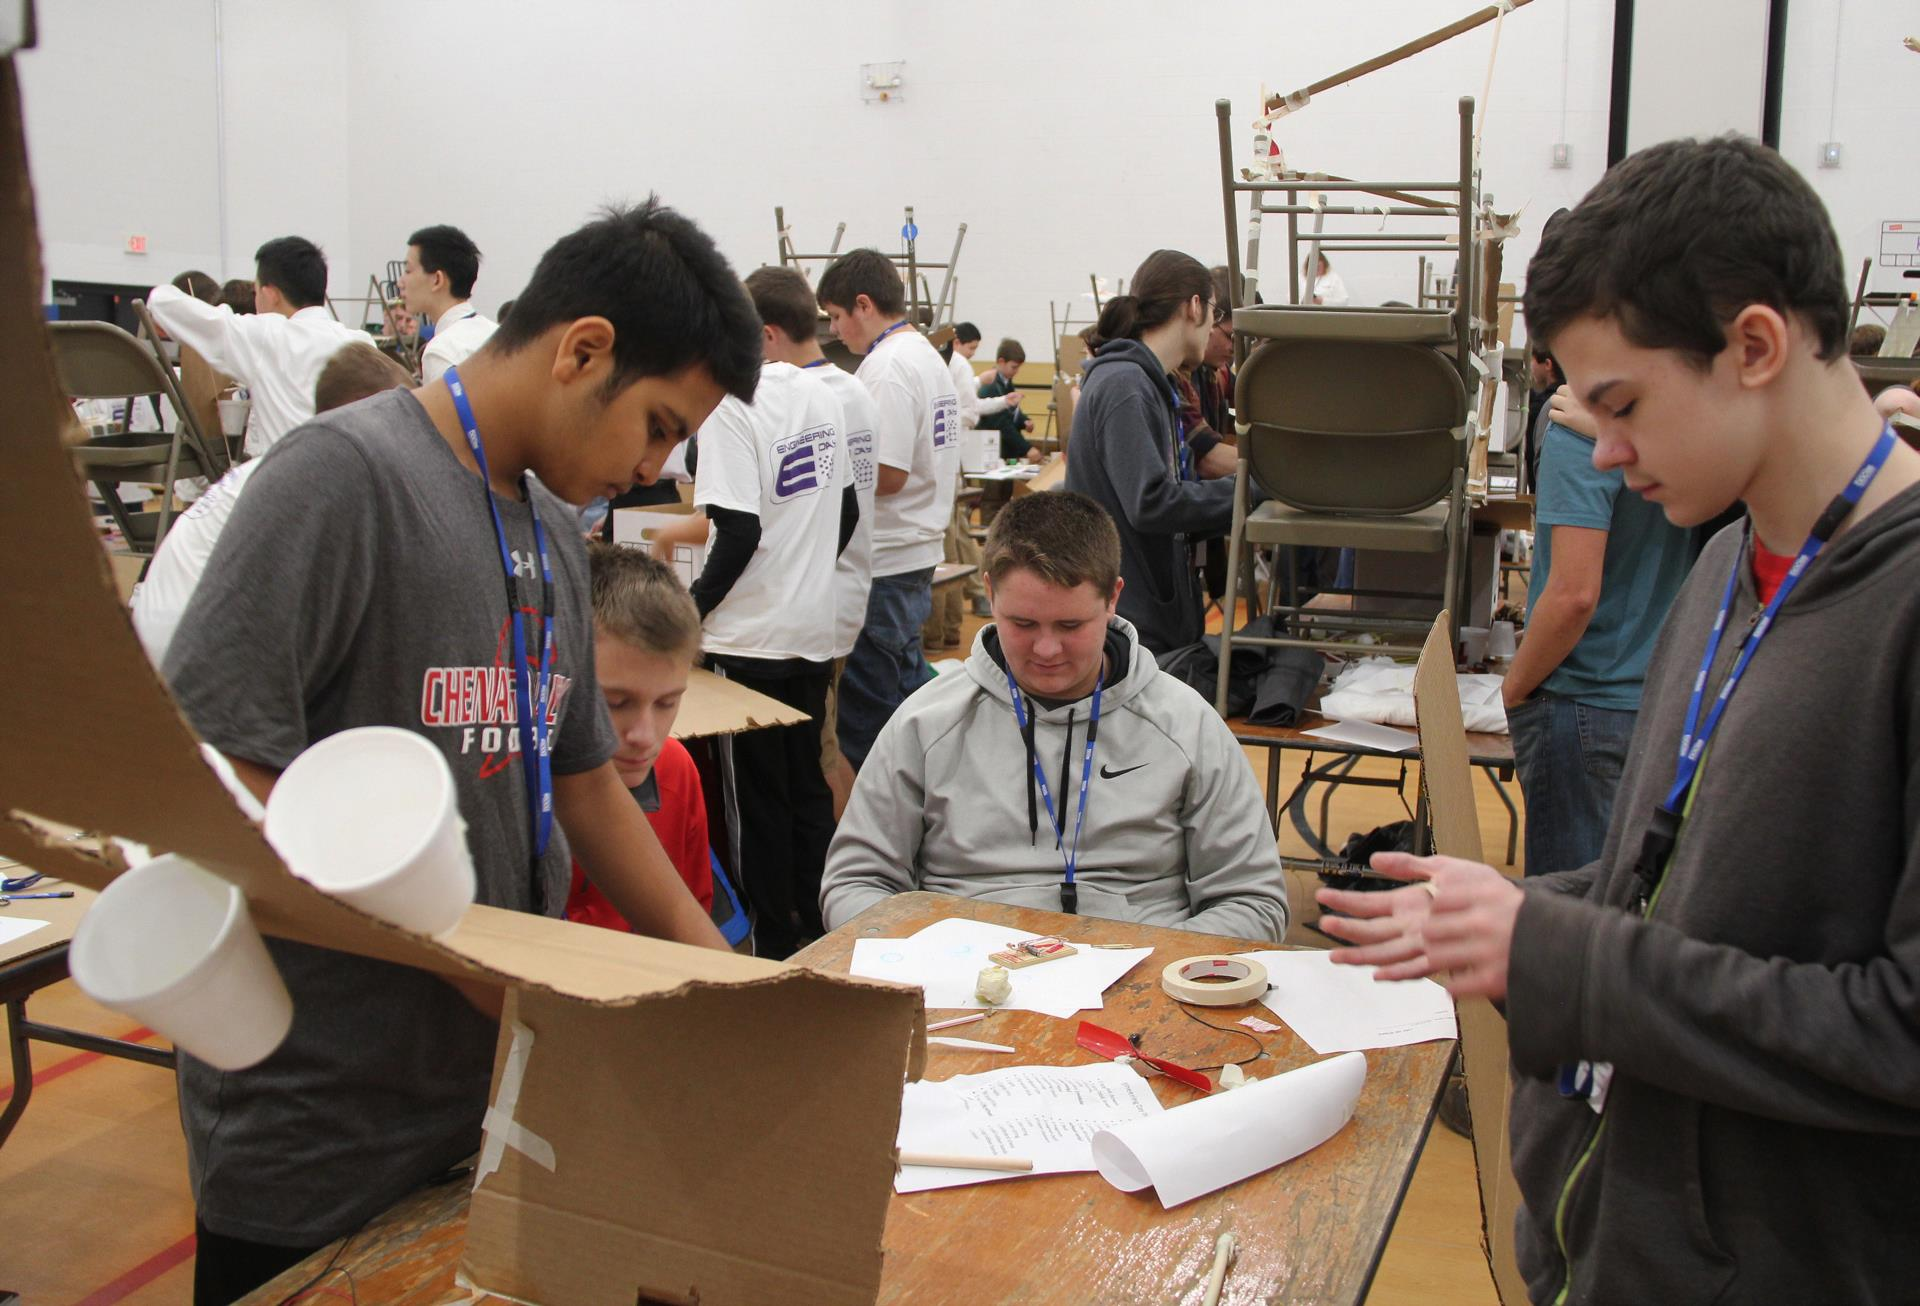 high school students working on engineering day project